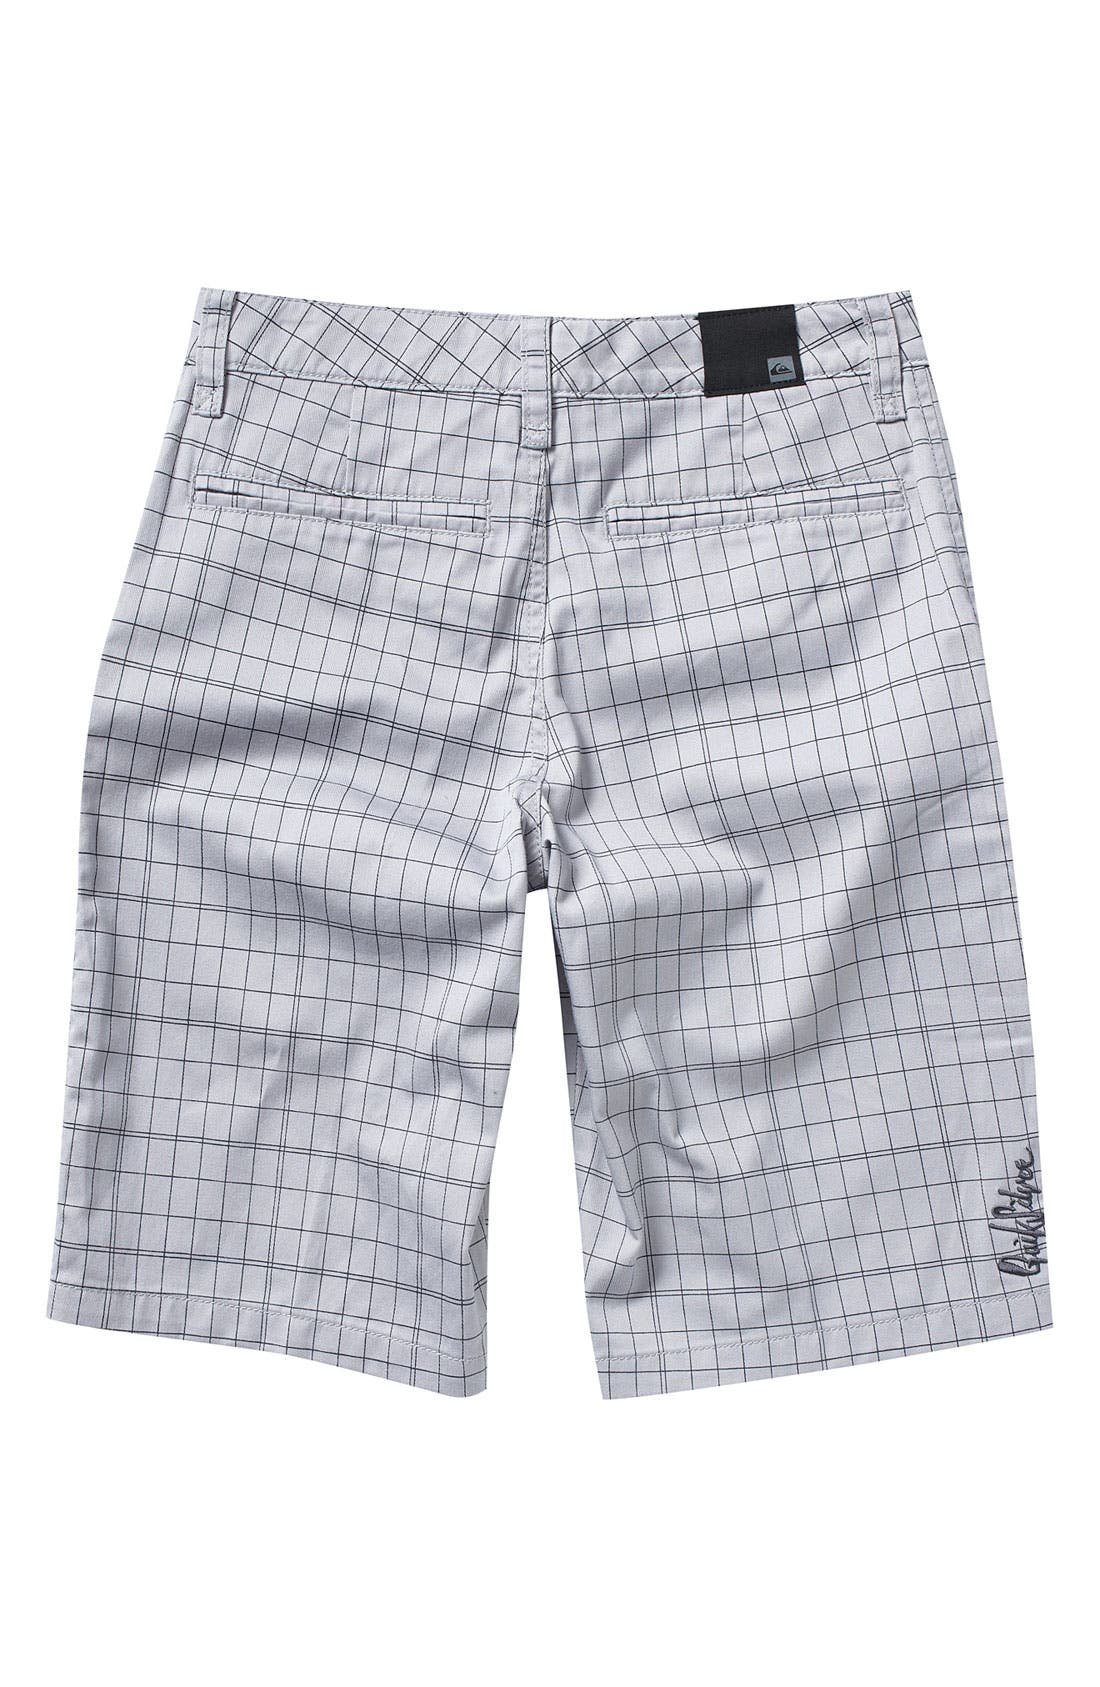 Alternate Image 2  - Quiksilver 'Nuno' Shorts (Little Boys)